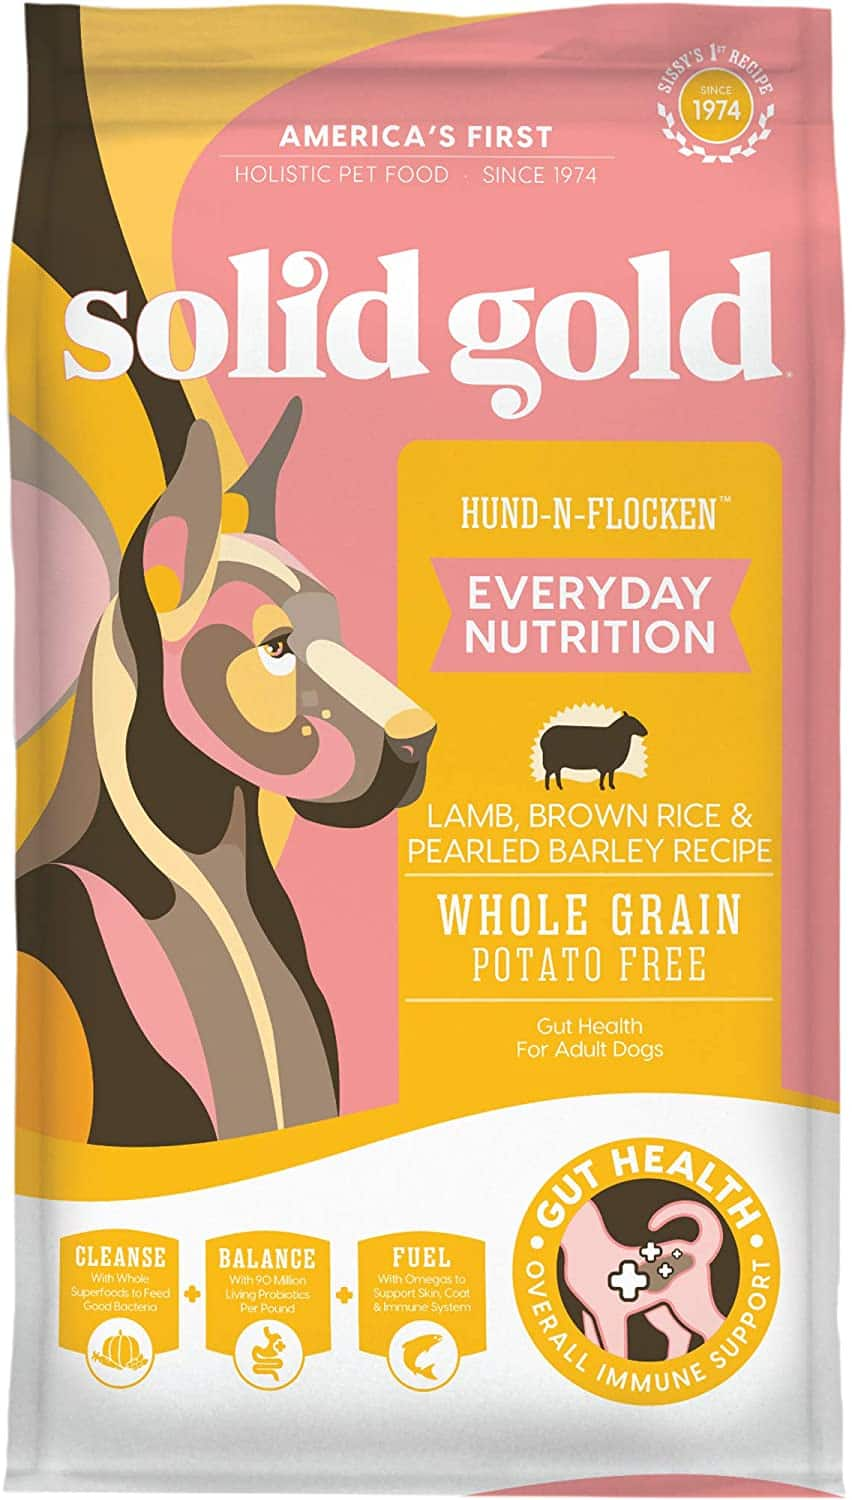 New Chewy Autoship Customers: 45-Lbs Solid Gold Hund-n-Flocken Everyday Nutrition Adult Dry Dog Food $36.90 ($0.82 per lb) + Free Shipping